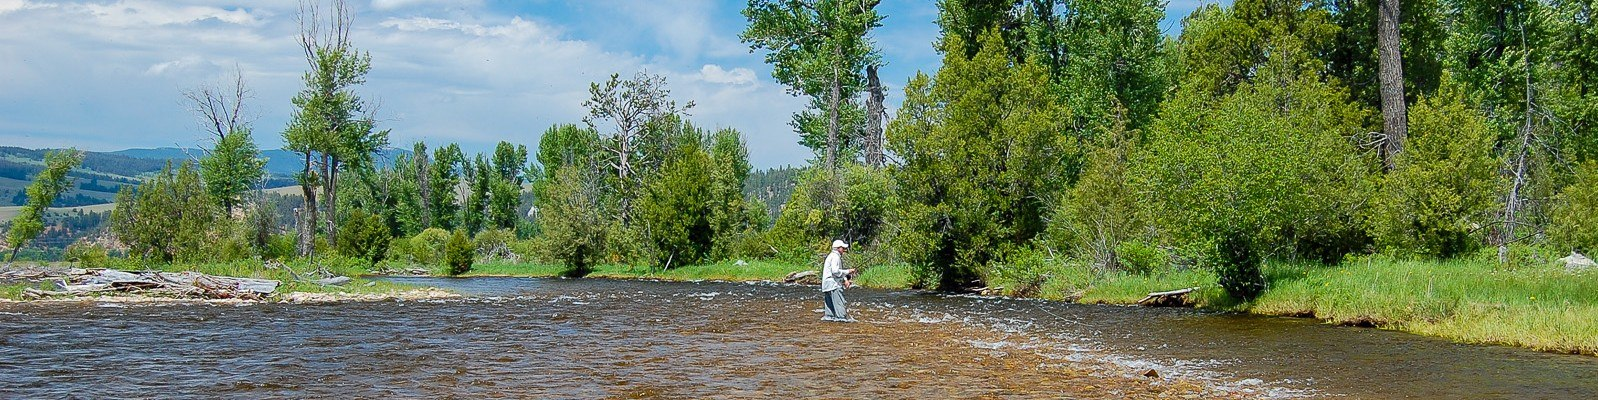 Montana Fishing Guides - Wading for Trout